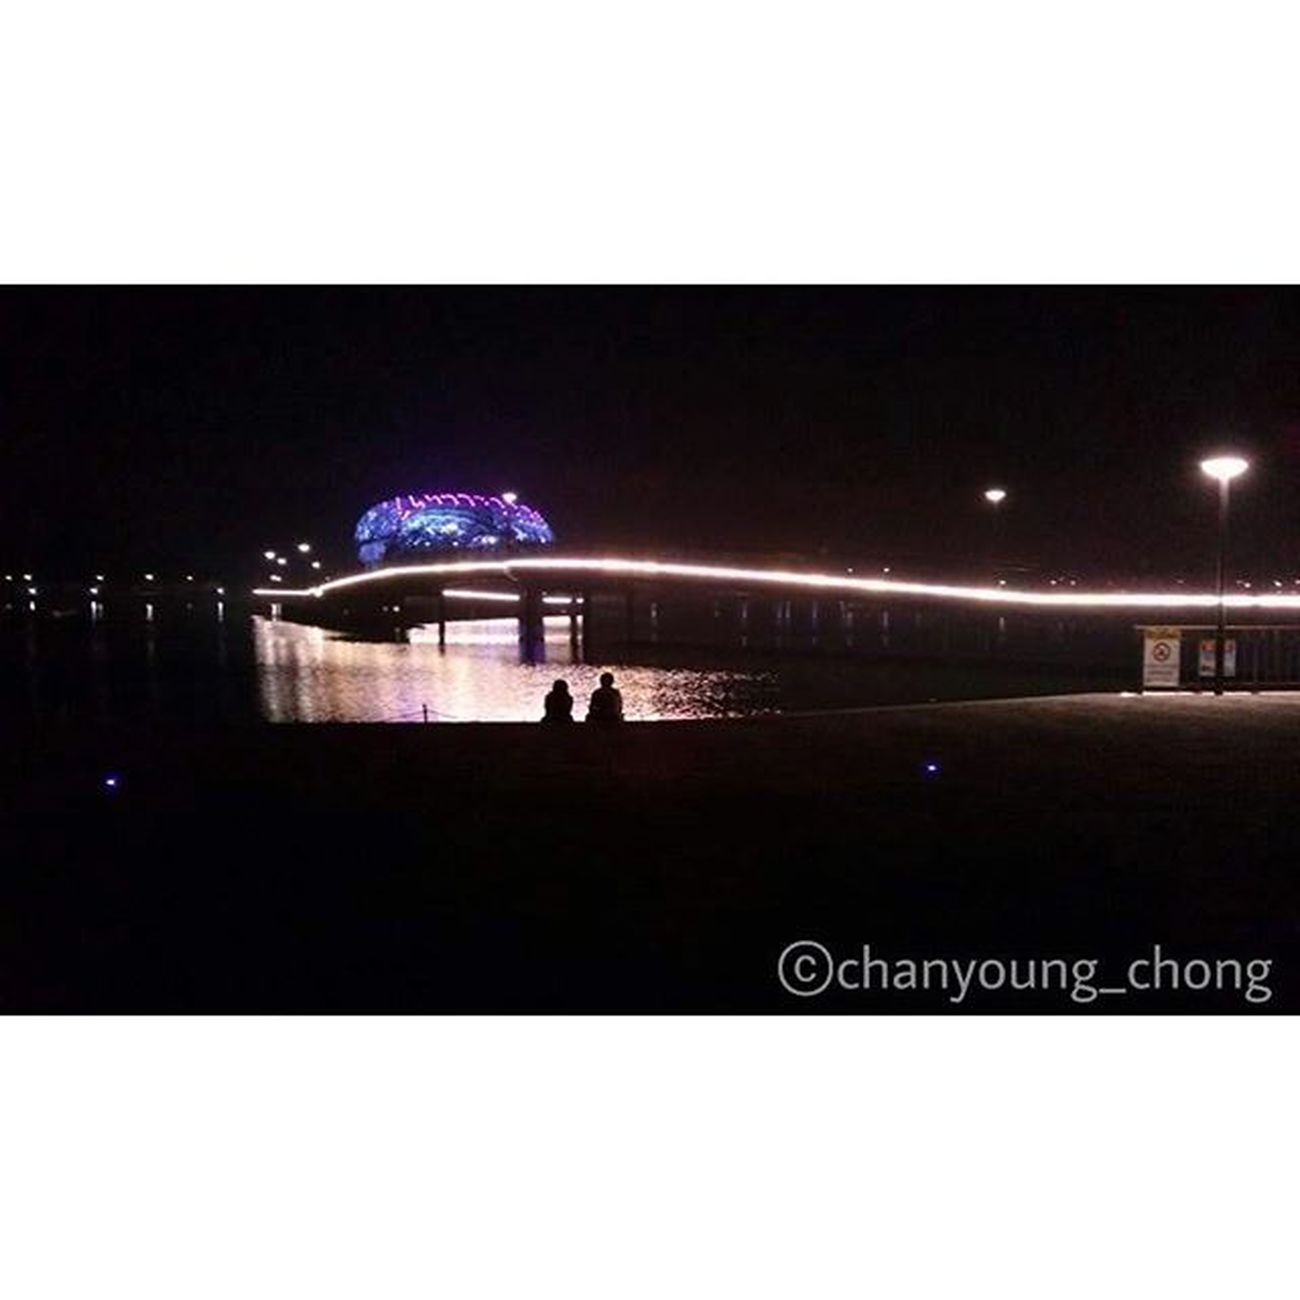 대한민국 세종 호수공원 연인 가로등 밤 사진 Korea Sejong Lakepark Couple Streetlight Illumination Night Photo